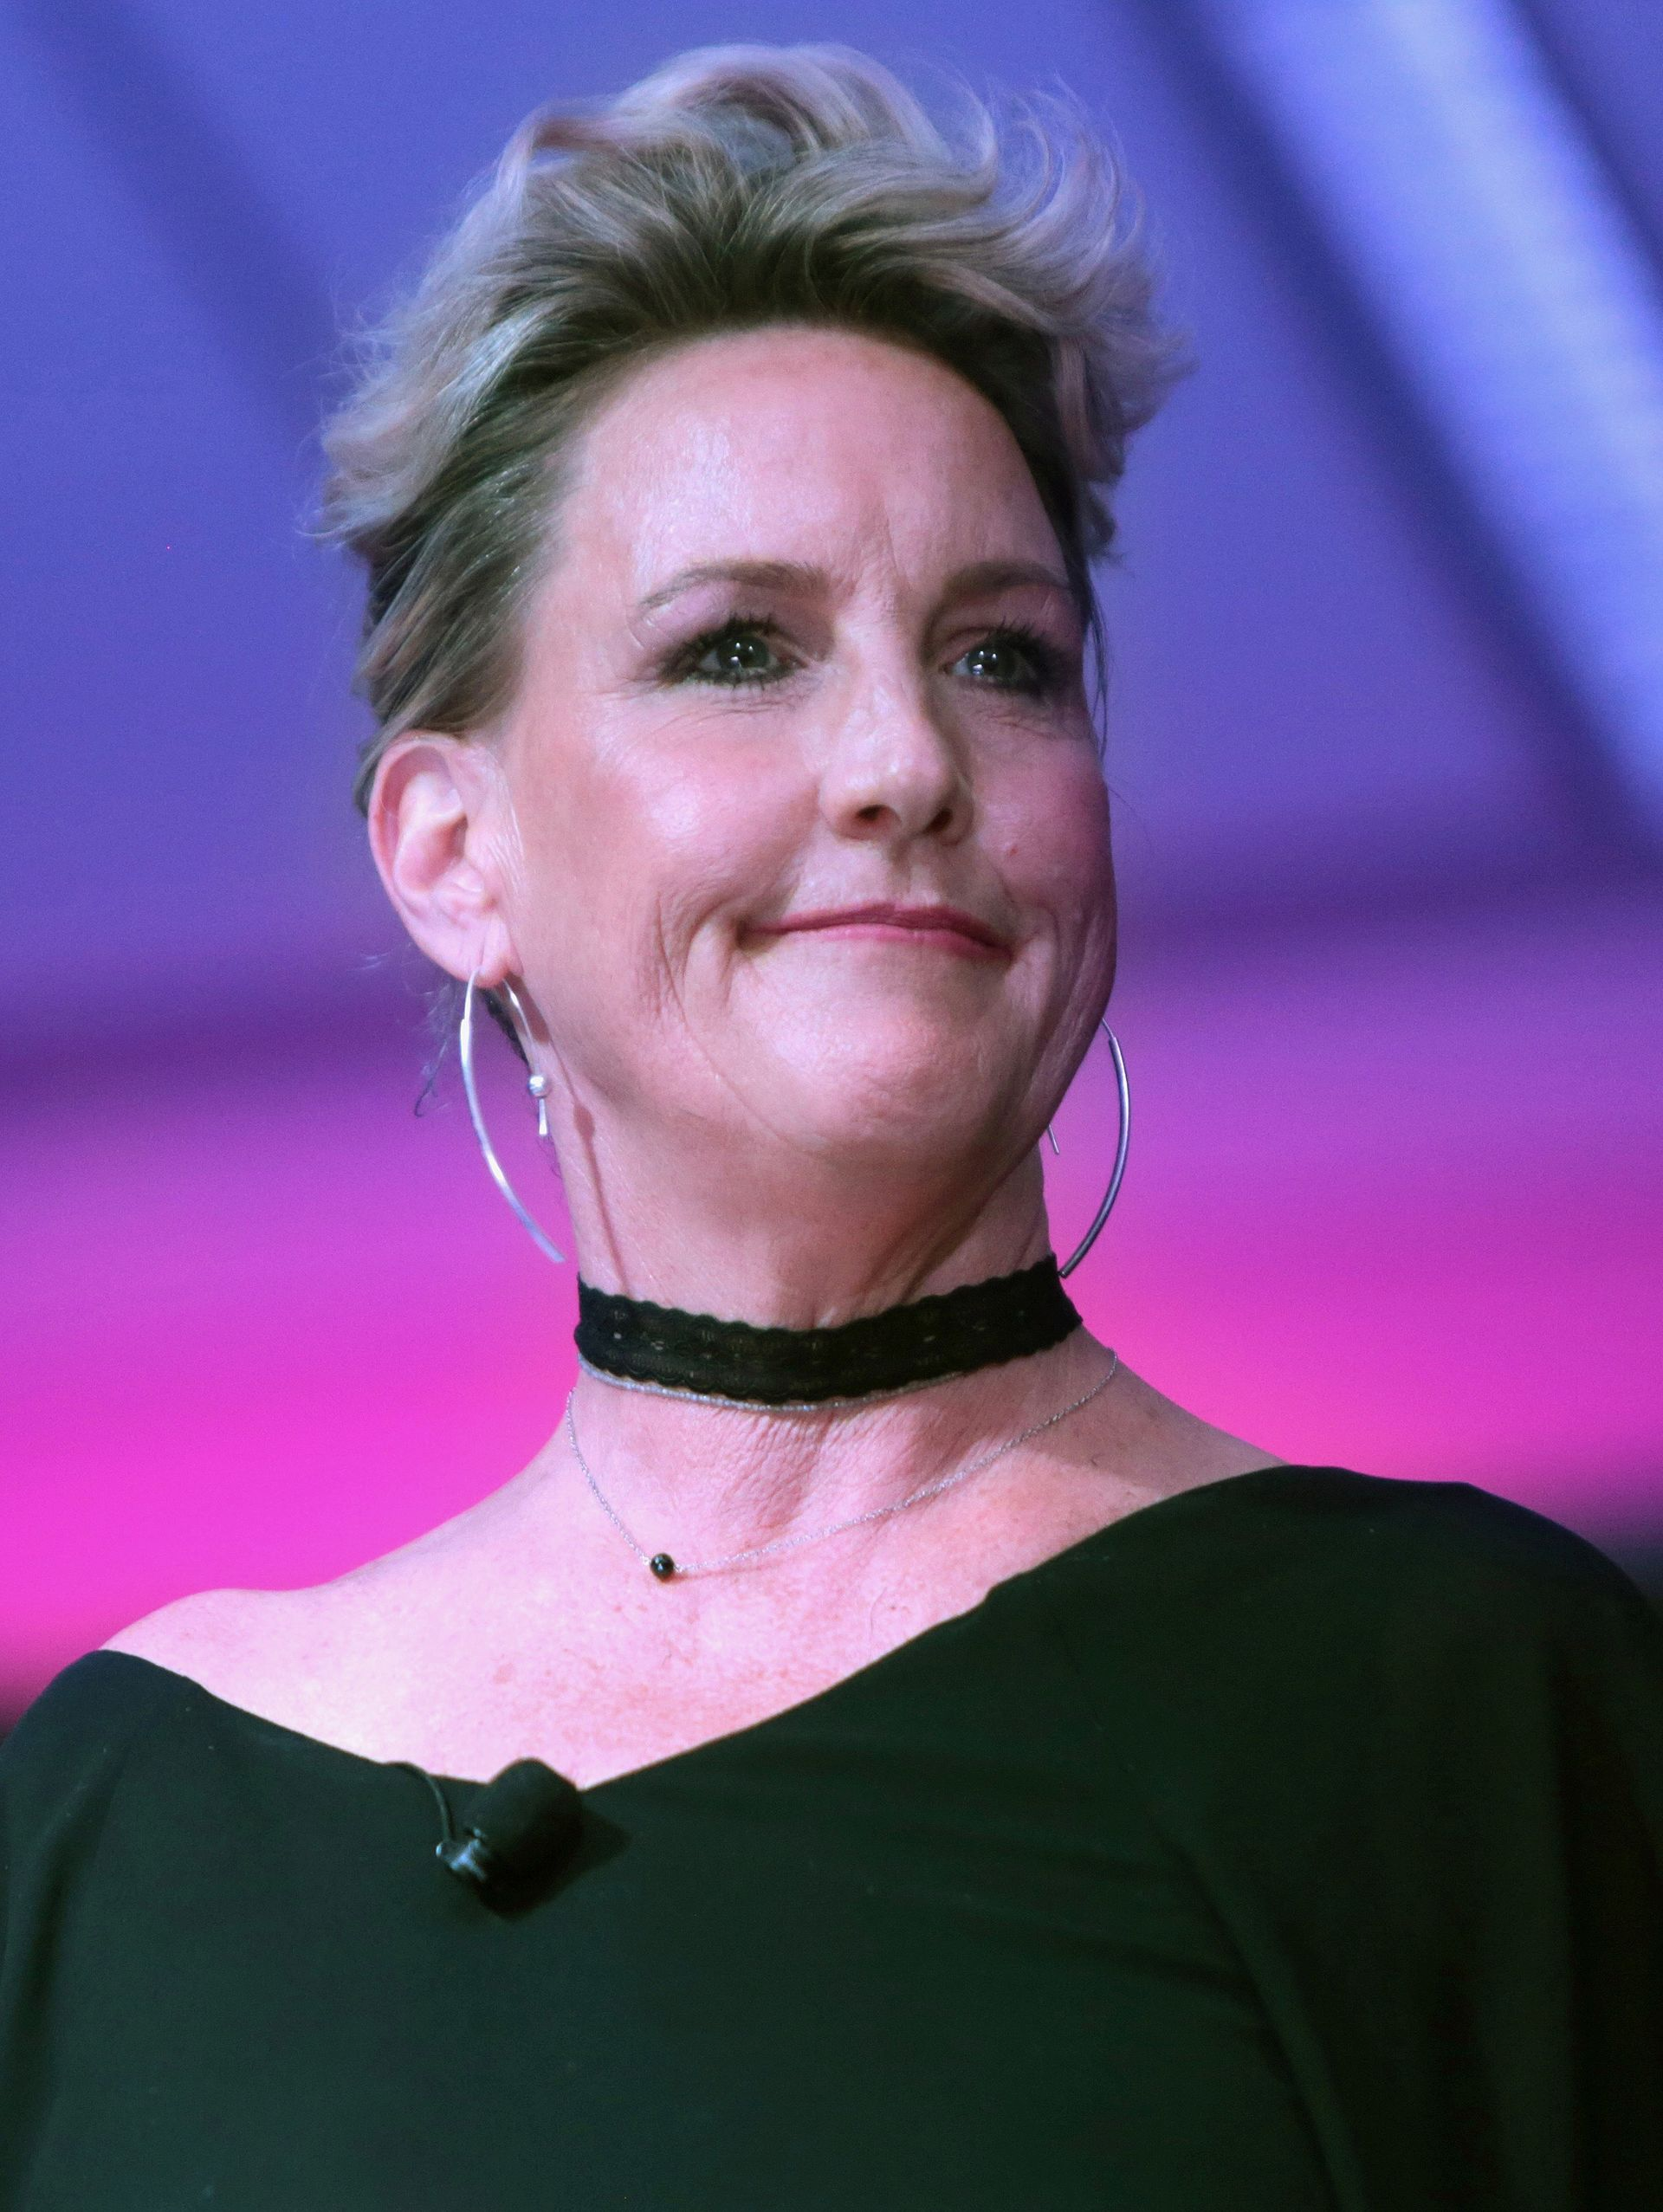 erin brockovich corporate responsibility Ethical issues in erin brockovich essay sample there are several ethical issues both personal and professional in this movie in their first meeting, donna told erin that pg&e had paid for doctors' visits for the whole family.